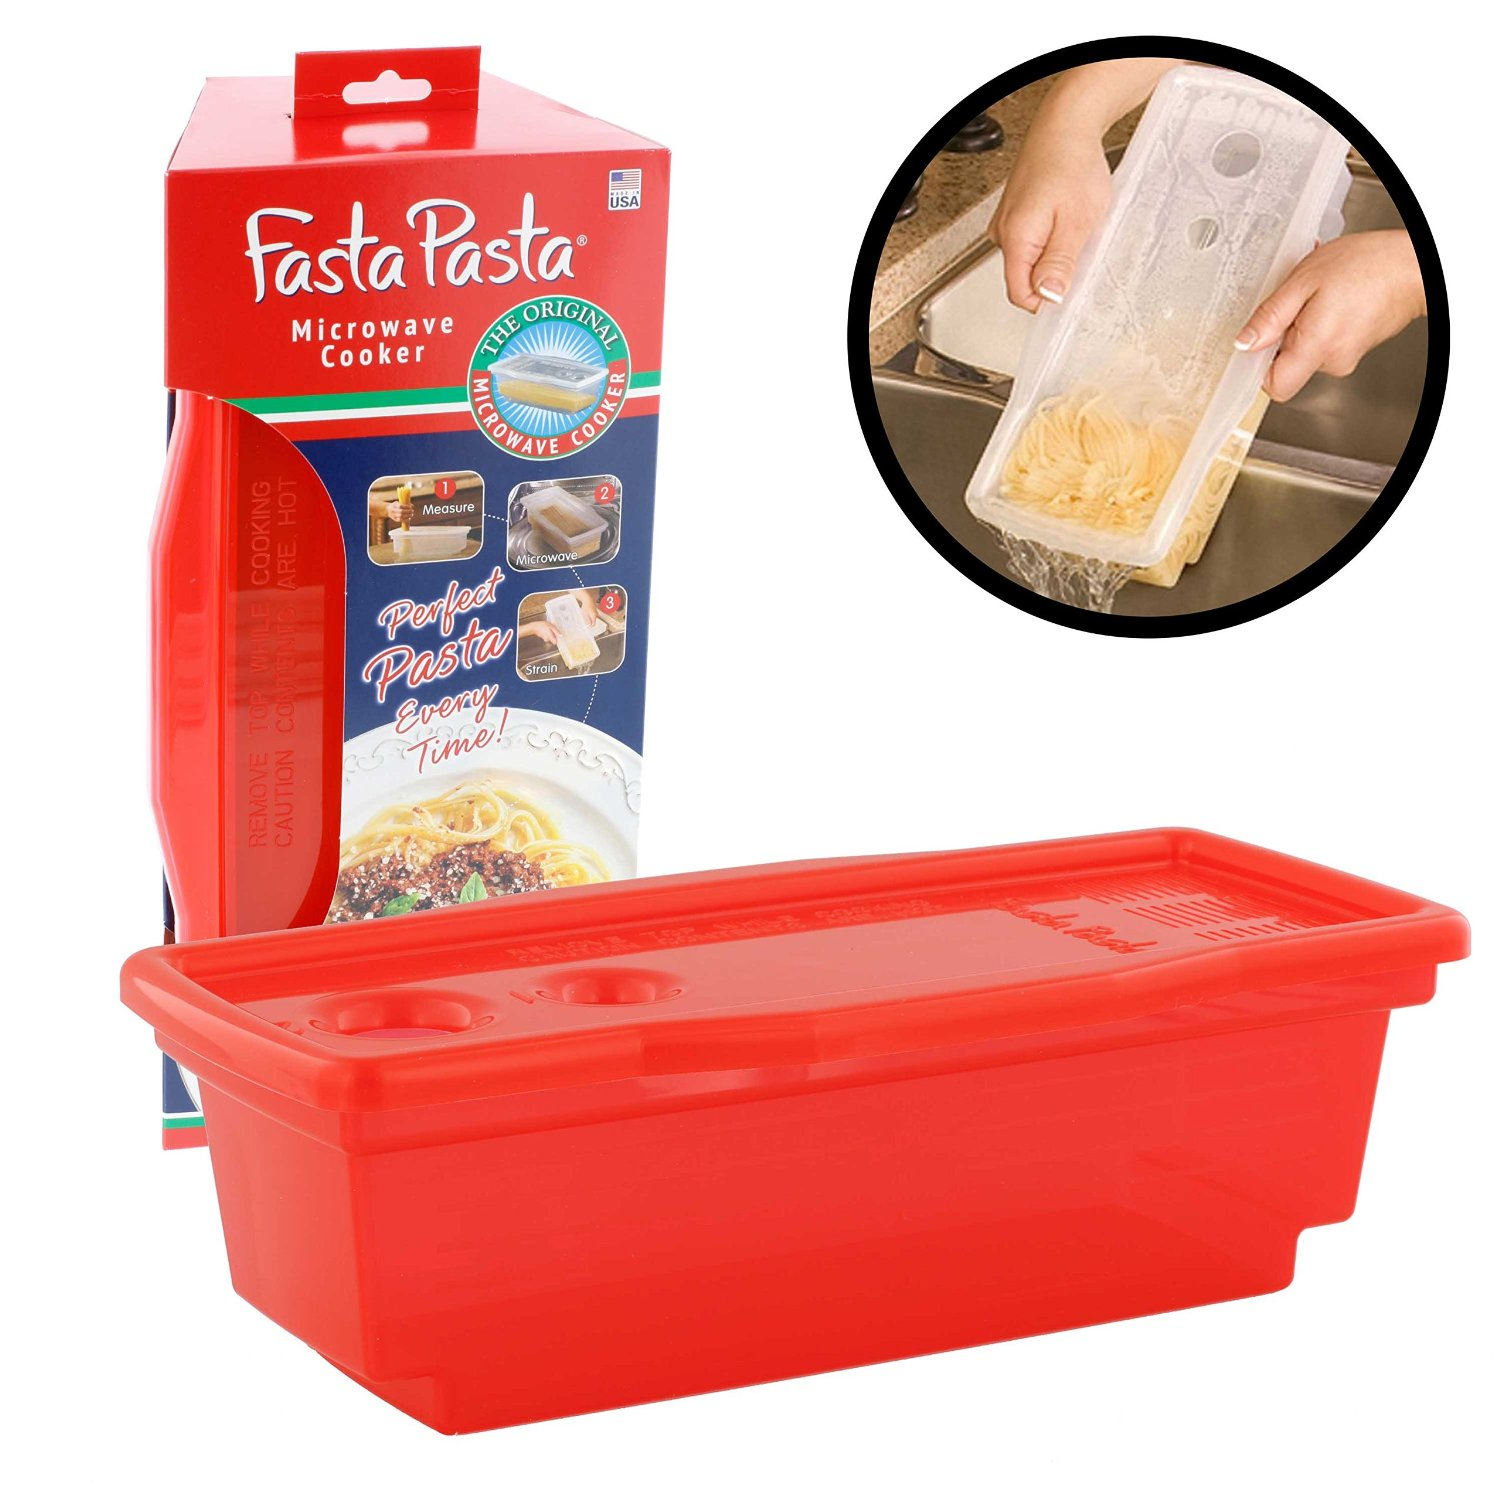 Fasta Pasta--helps make dinnertime a snap!